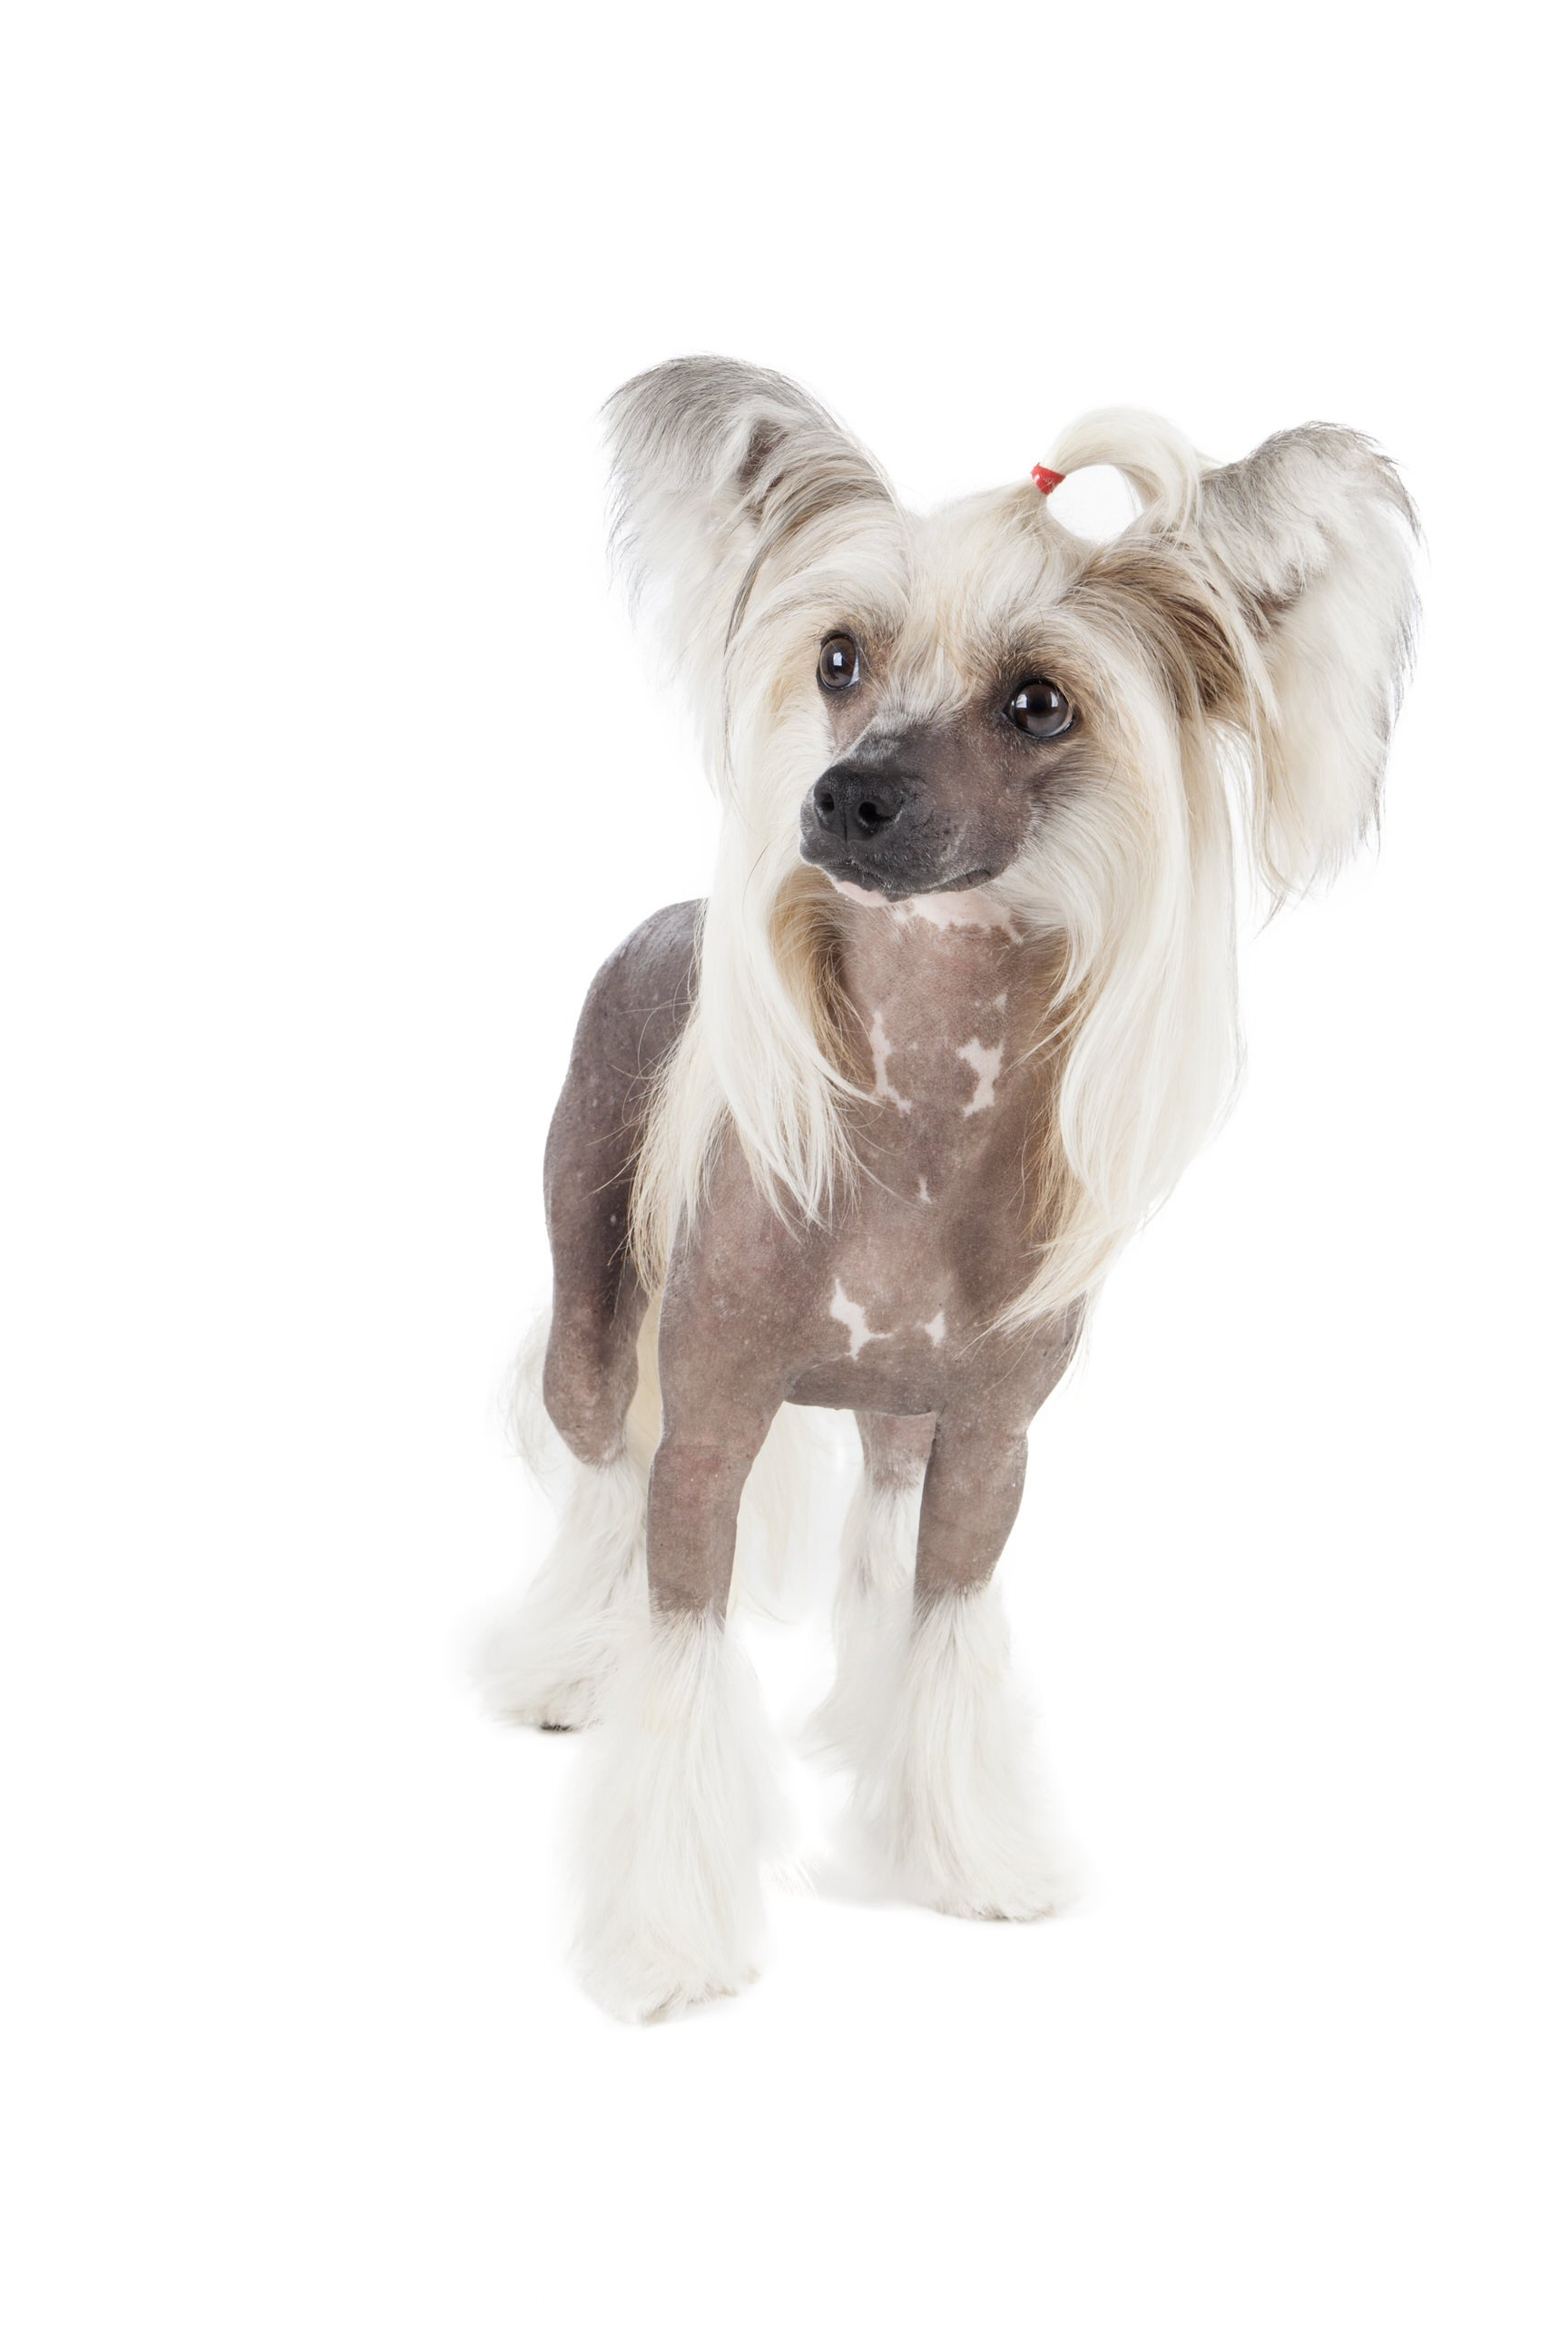 Invigorating While Thought Those Allergies Windy City Paws As A Hairless Some Chinese Crested Dogs Do Those Without Fur Have A Similar Look To American Dog Breeds bark post Chinese Dog Breeds